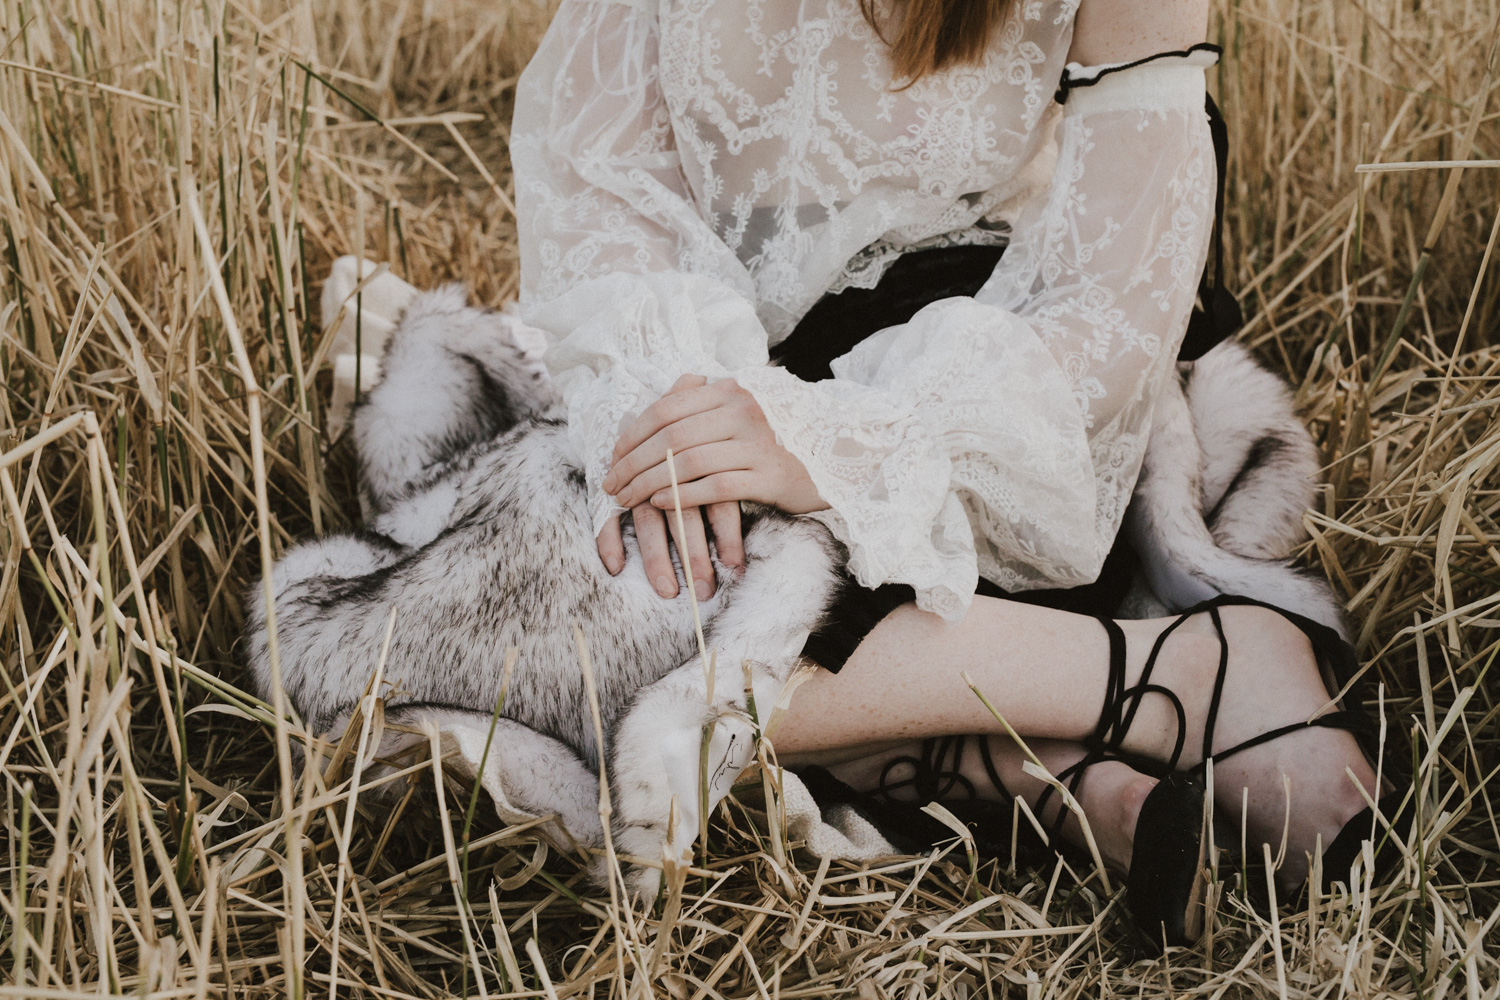 Editorial portrait shoot published in Big Ink Magazine, shot by Jenny Wu in a large open field in Canberra